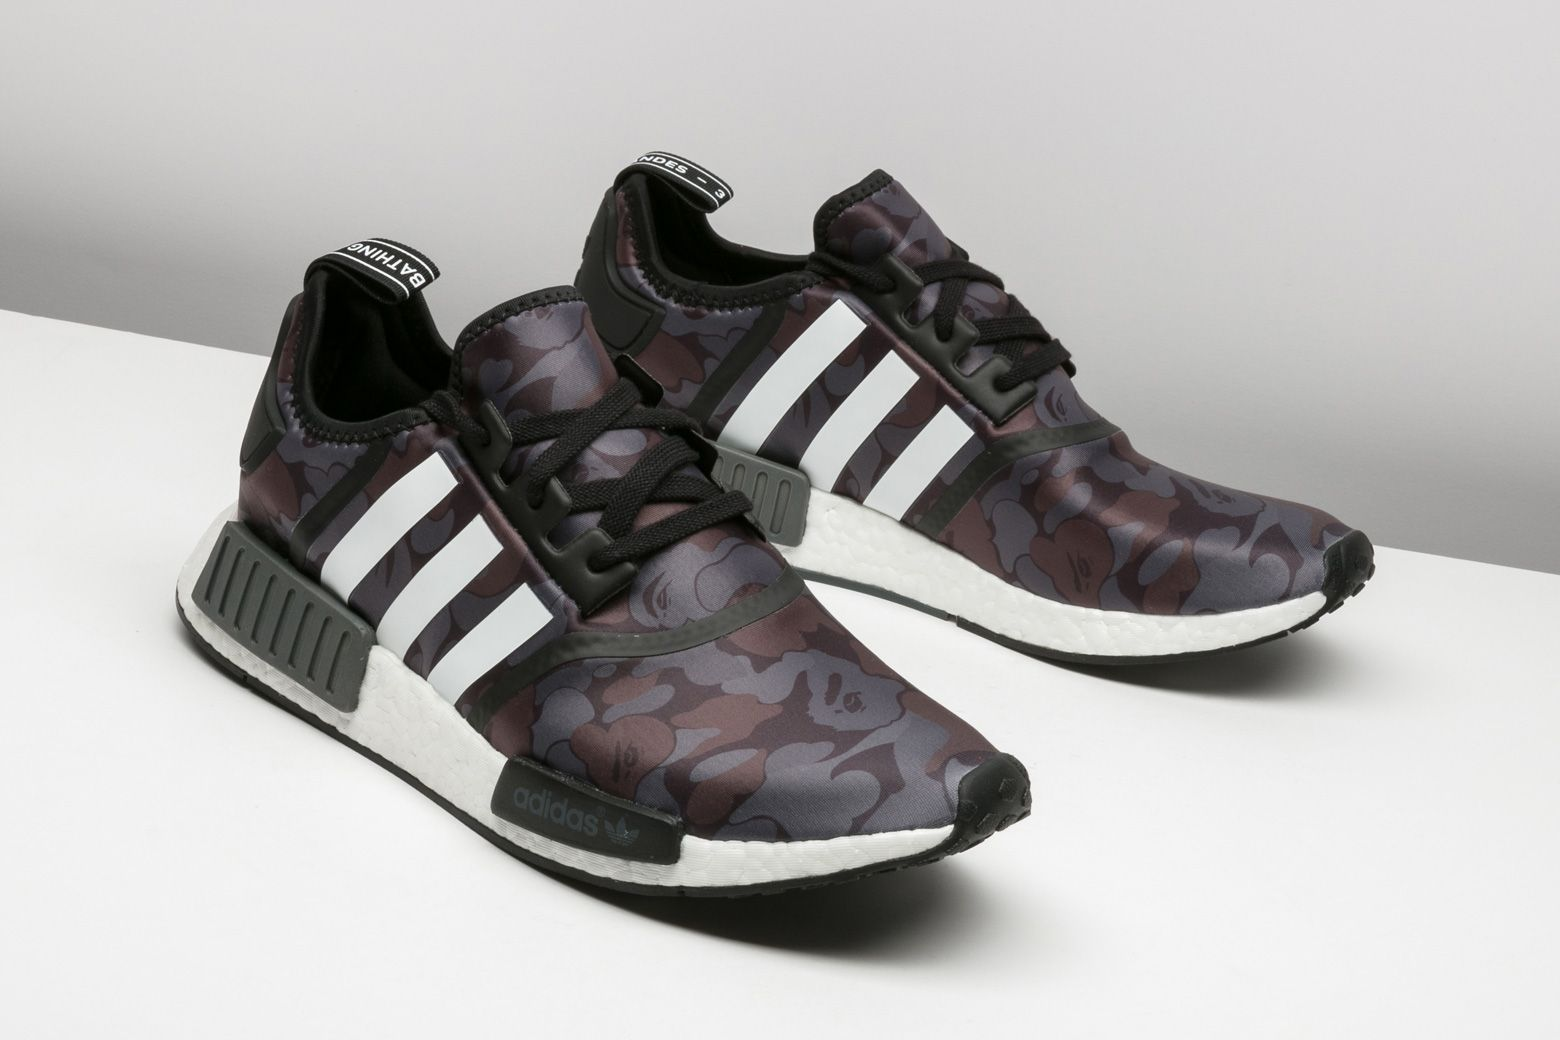 f7d5a559f6836 The adidas NMD R1 Surfaces in